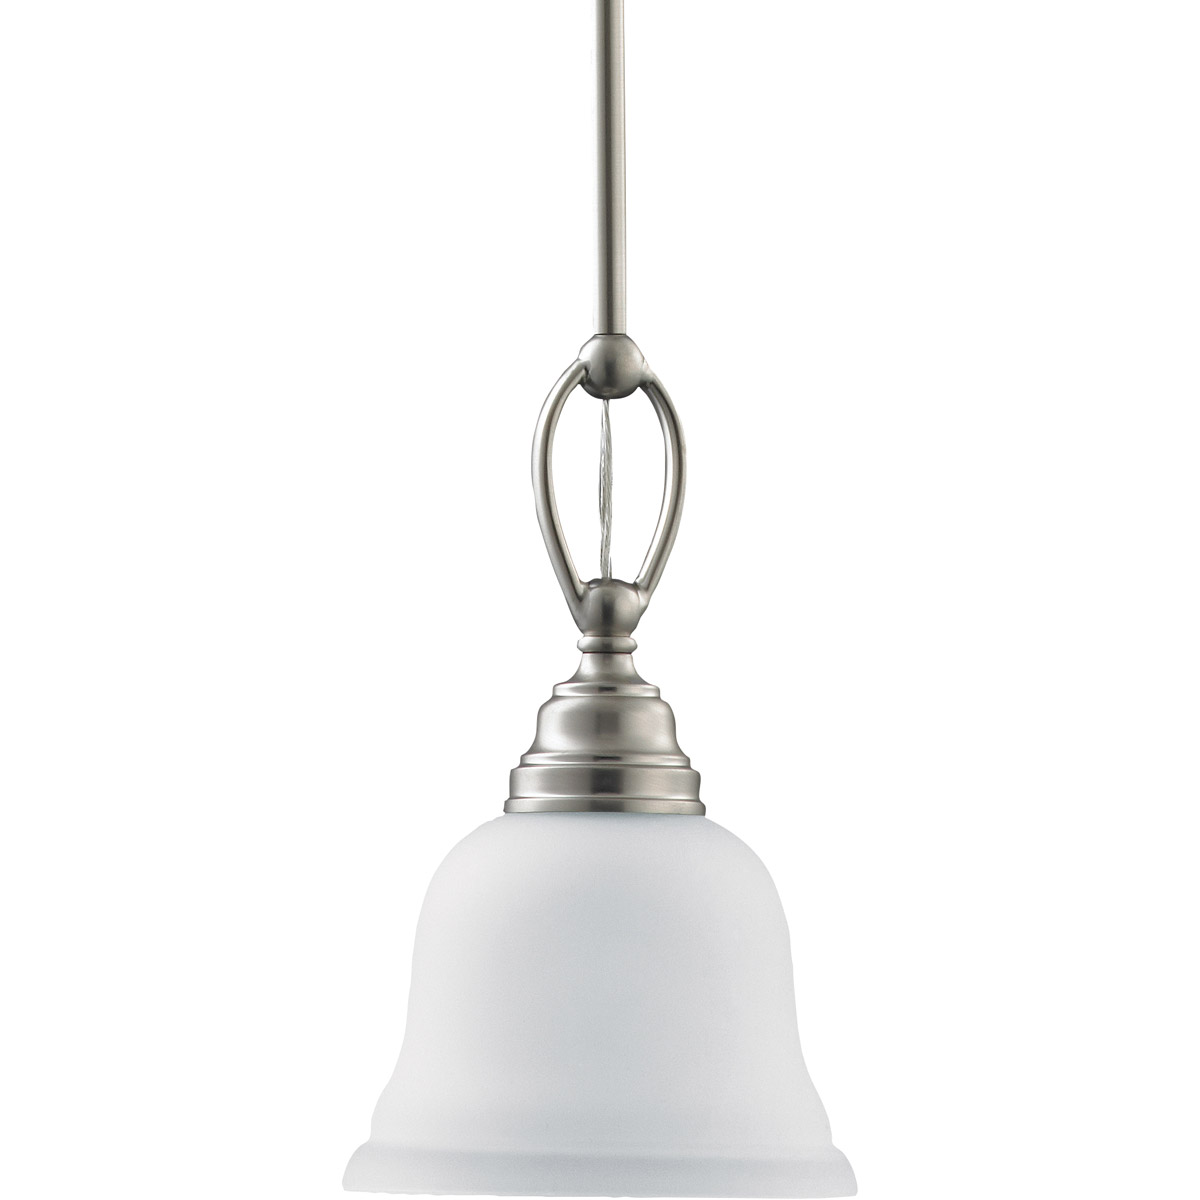 Sea Gull Lighting Wheaton 1 Light Mini Pendant in Brushed Nickel 61625-962